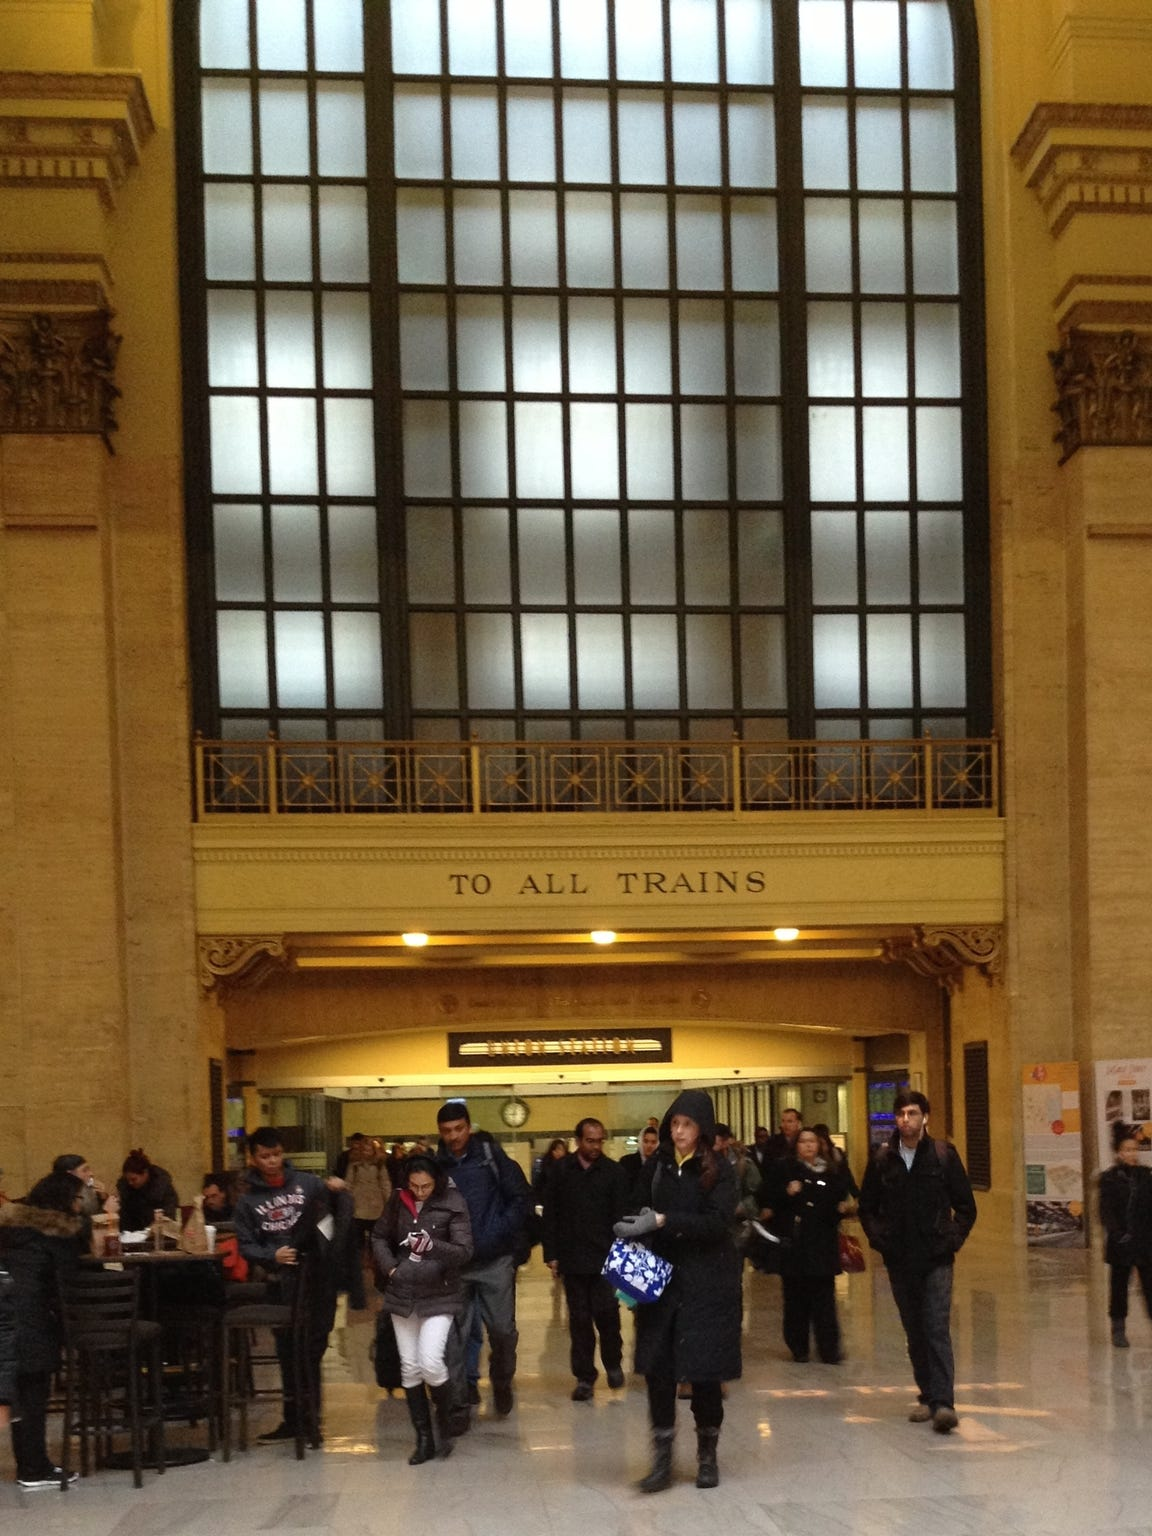 Chicago's Union Station.